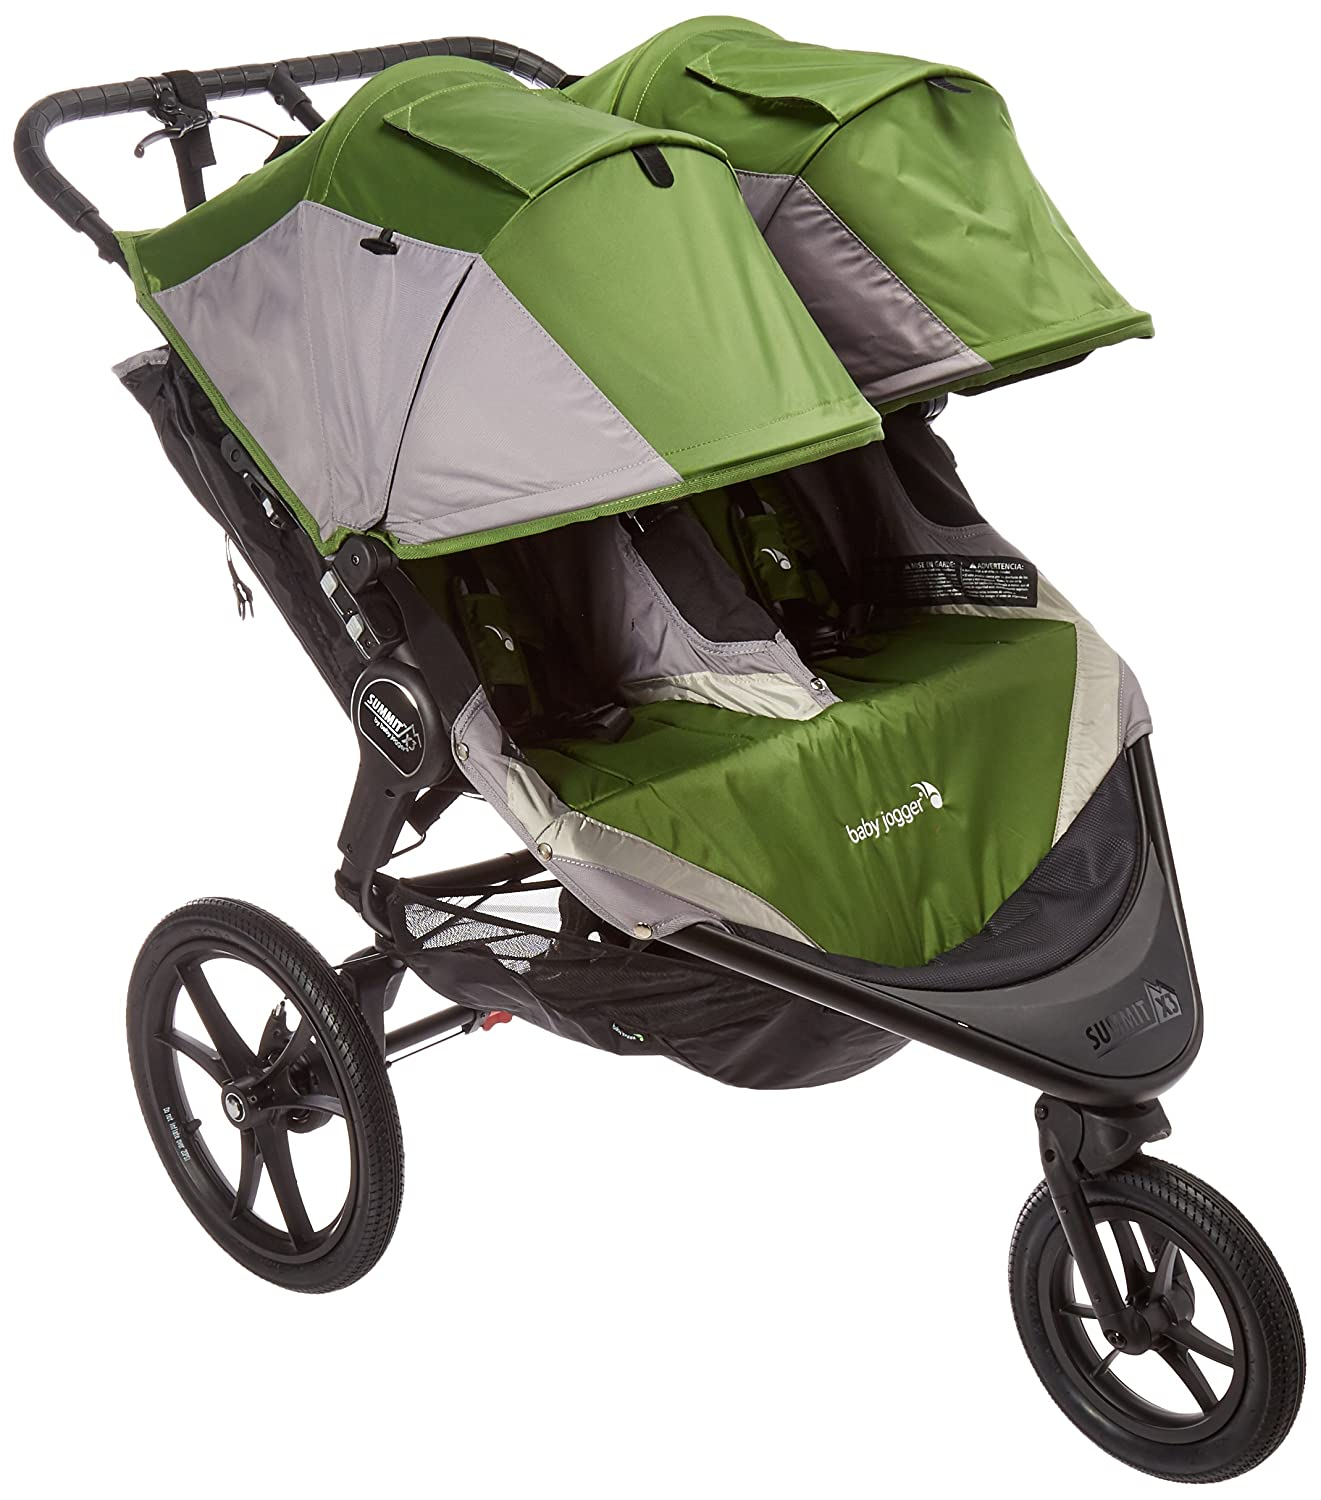 Baby Jogger Summit X3 Double Jogging Stroller 2016 Air Filled Rubber Tires All Wheel Suspension